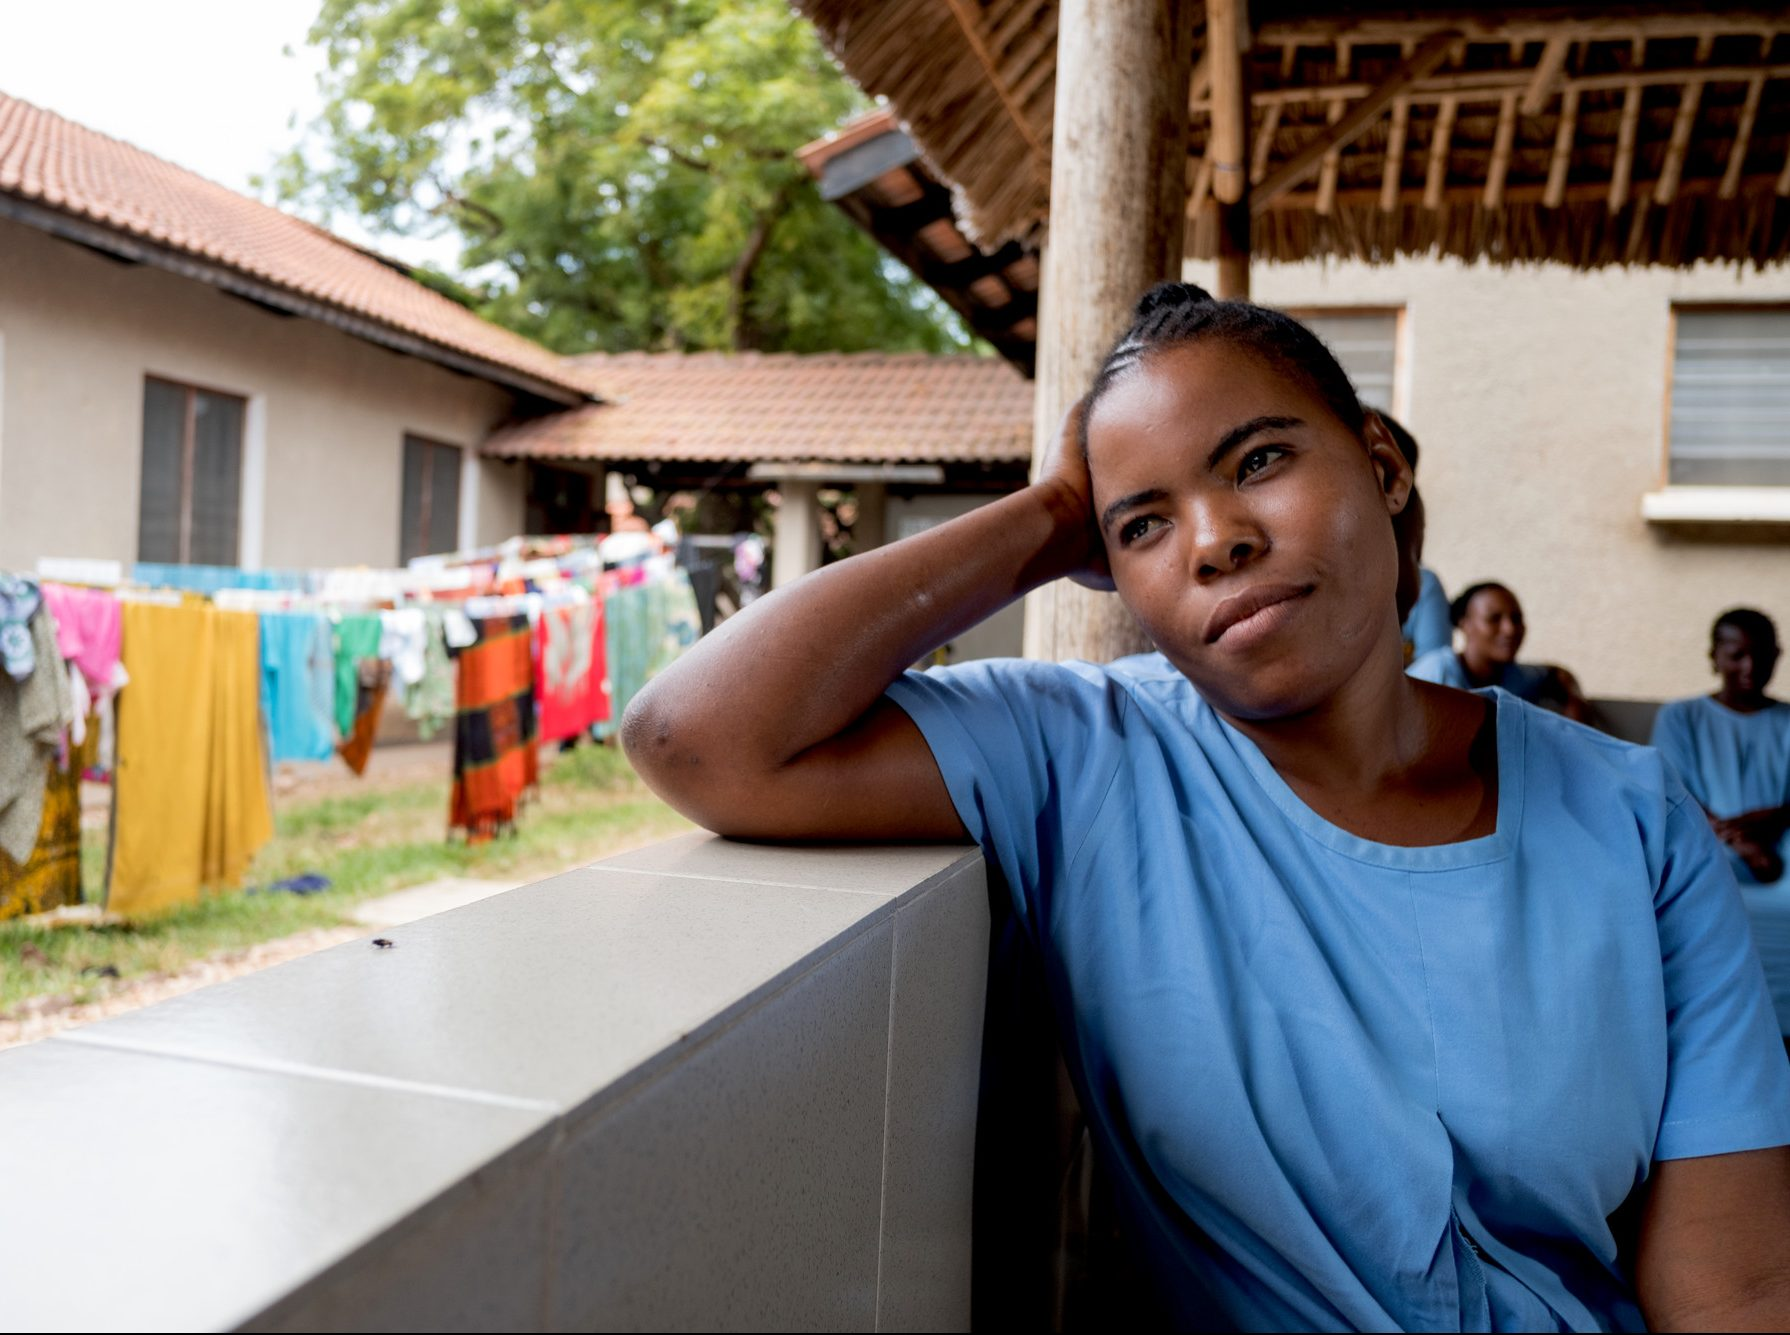 Janeth has had life-transforming surgery for fistula at a CBM-supported hospital in Tanzania.